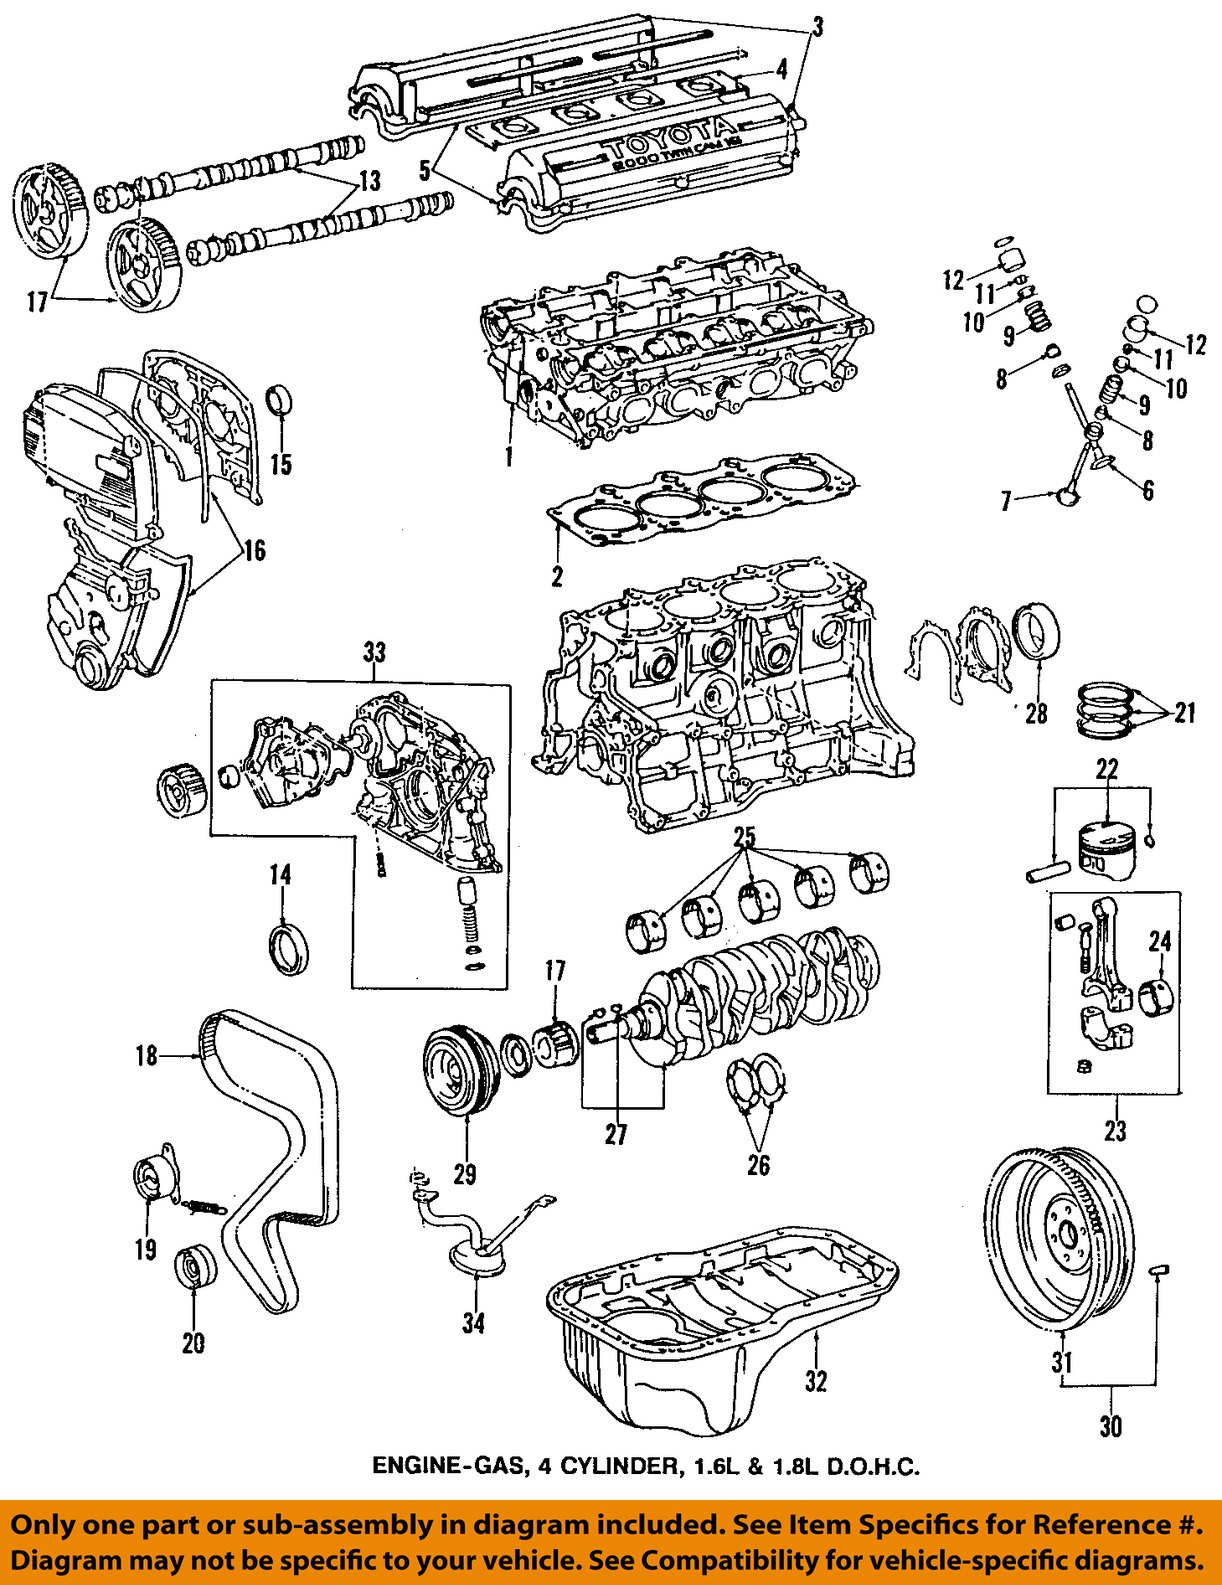 pictures of a 1991 toyota corolla efi engine diagram diagram of a 03 toyota 4runner v8 engine toyota oem 1991 corolla-engine timing belt 1356819145 | ebay